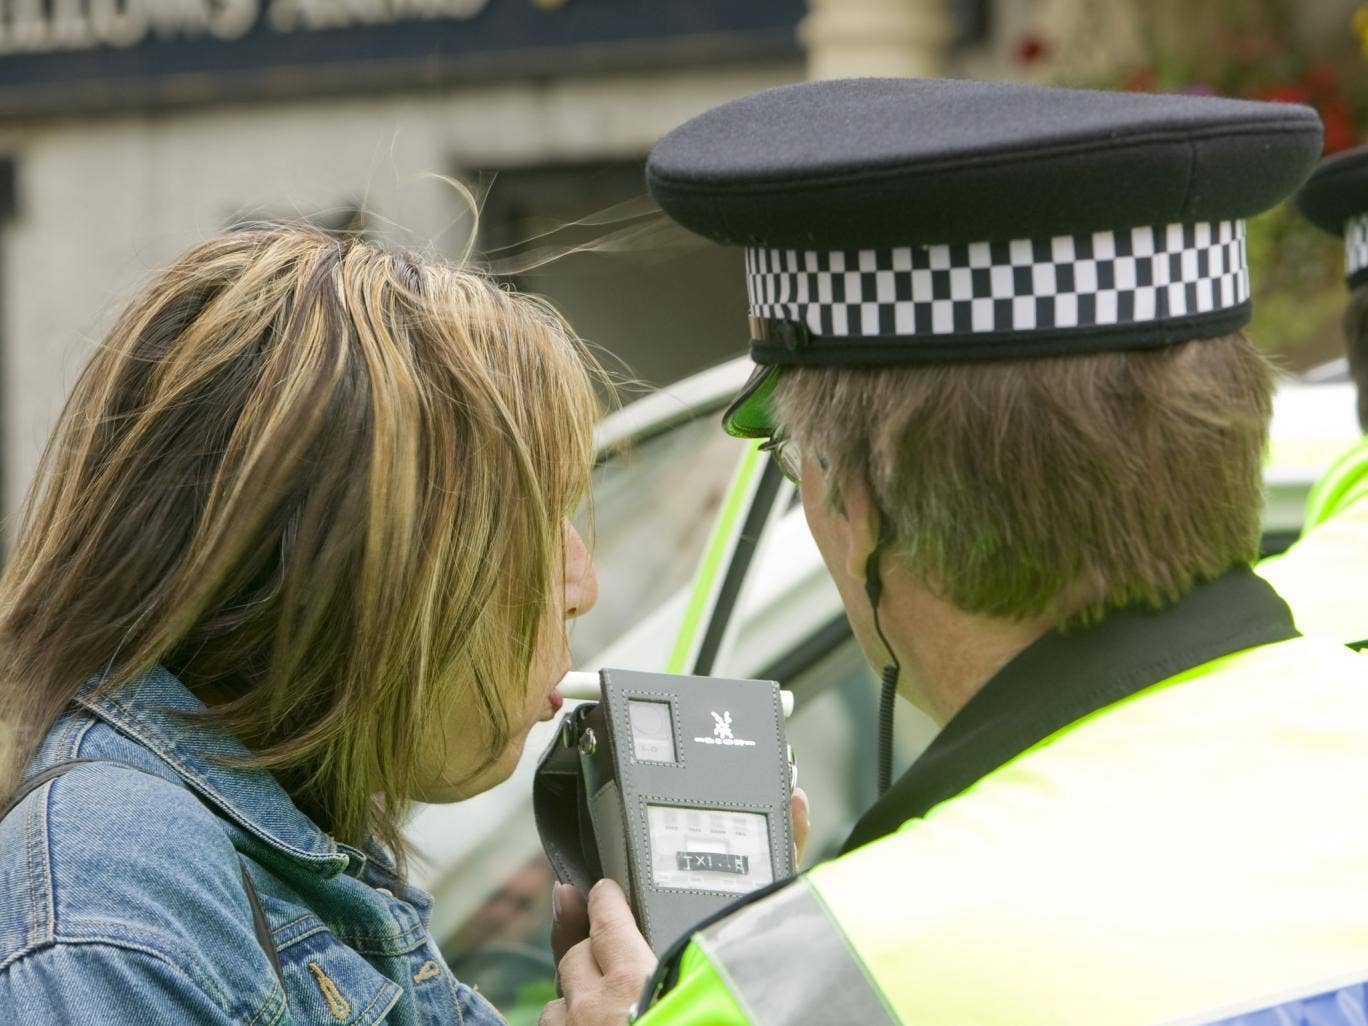 Approximately 290 people died in drink-drive accidents across Britain in 2012, 25 per cent more than 2011